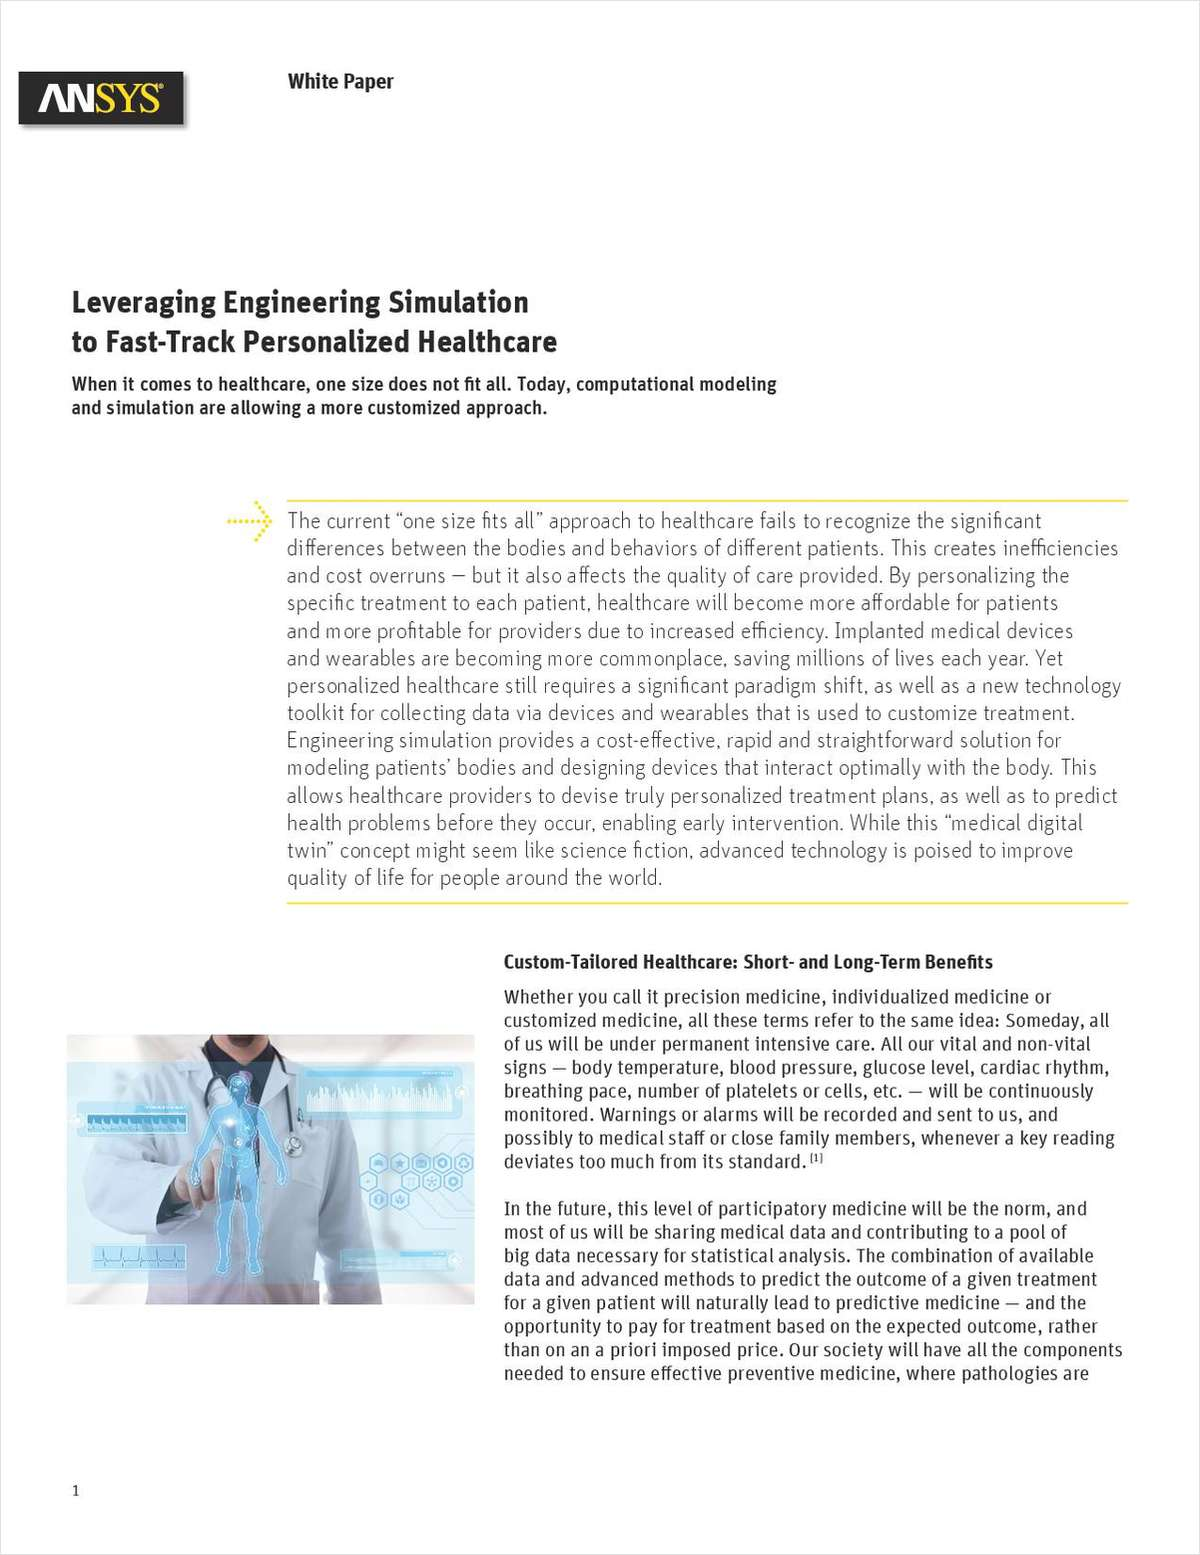 Leveraging Engineering Simulation to Fast-Track Personalized Healthcare